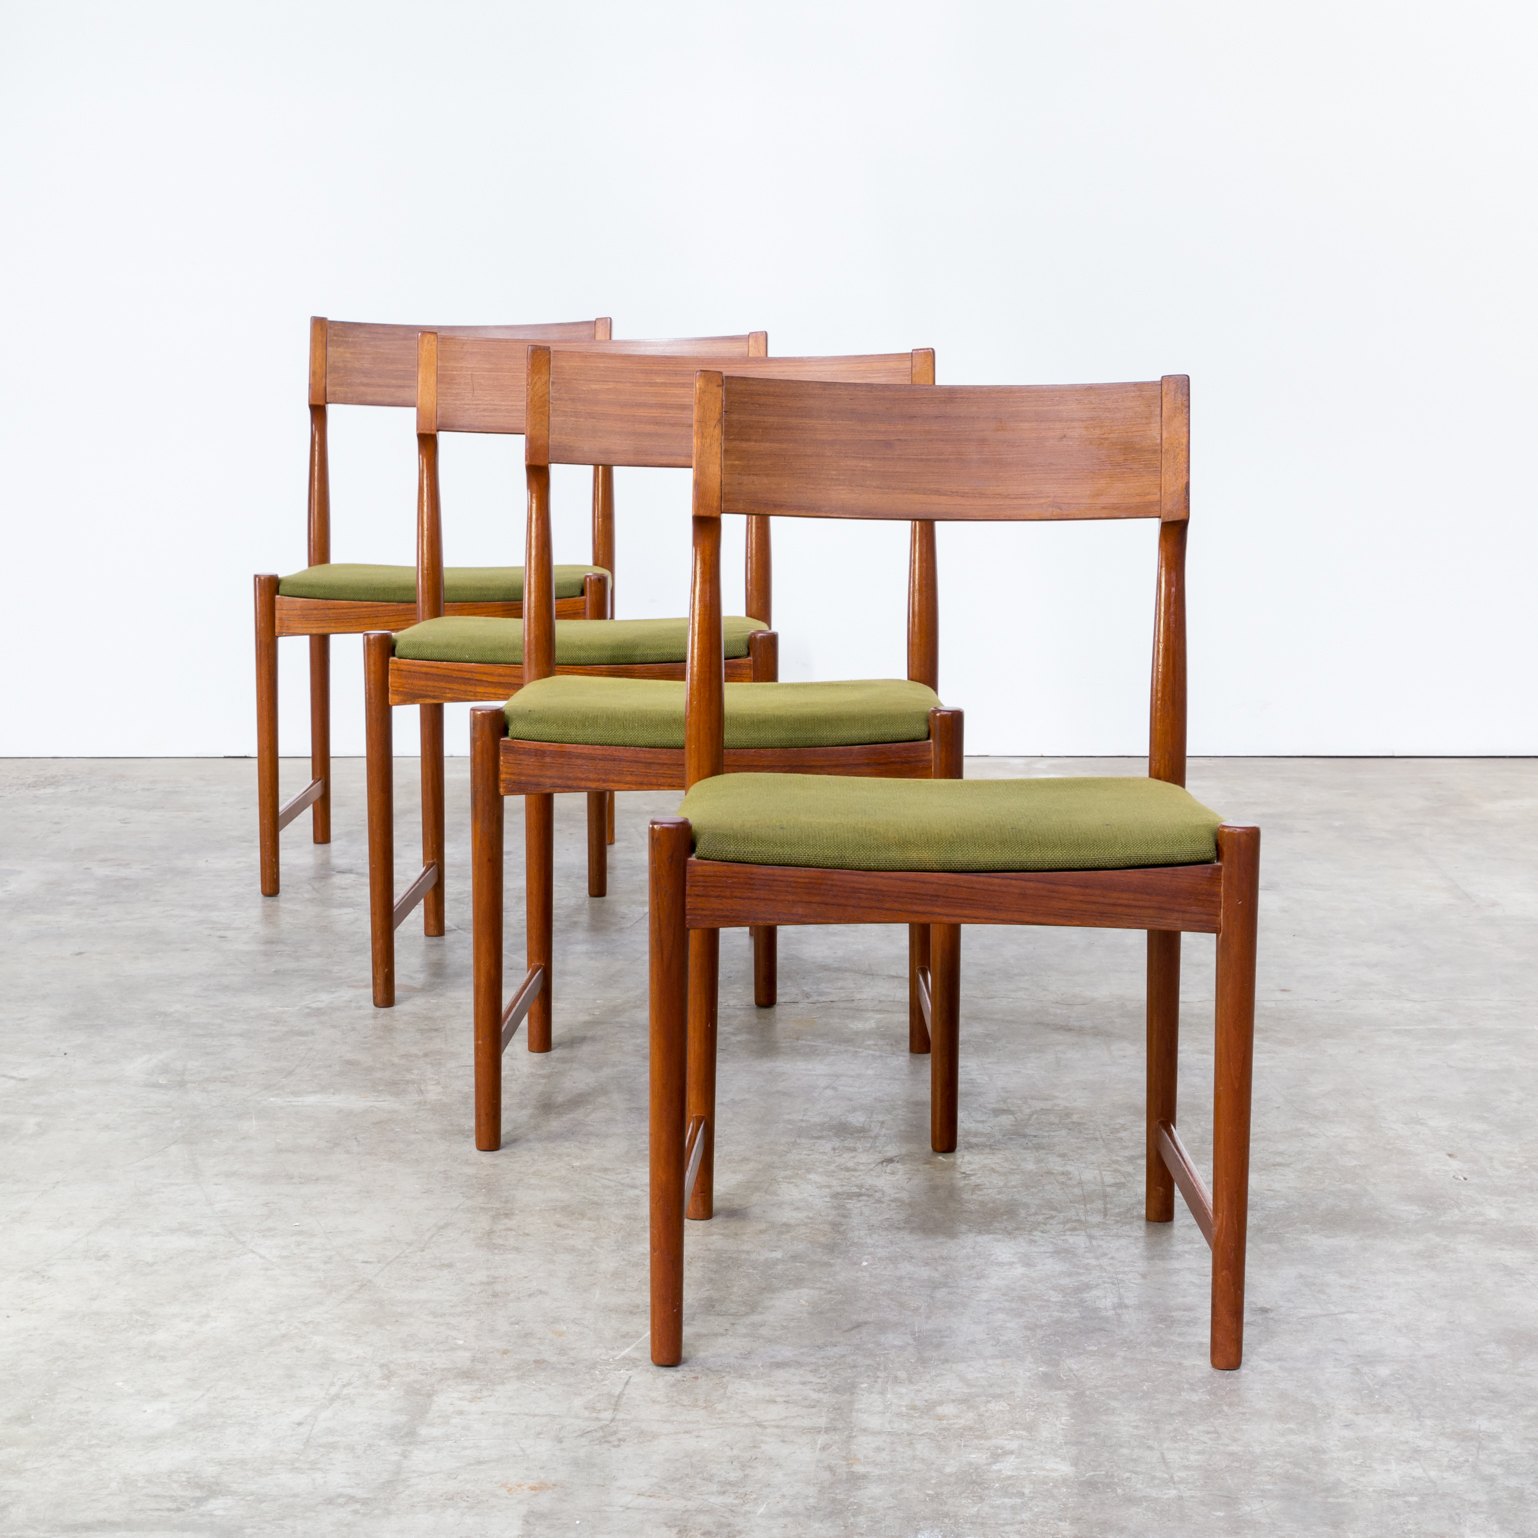 60s severin hansen dining chairs for bovenkamp set 4 for Designer chairs from the 60s